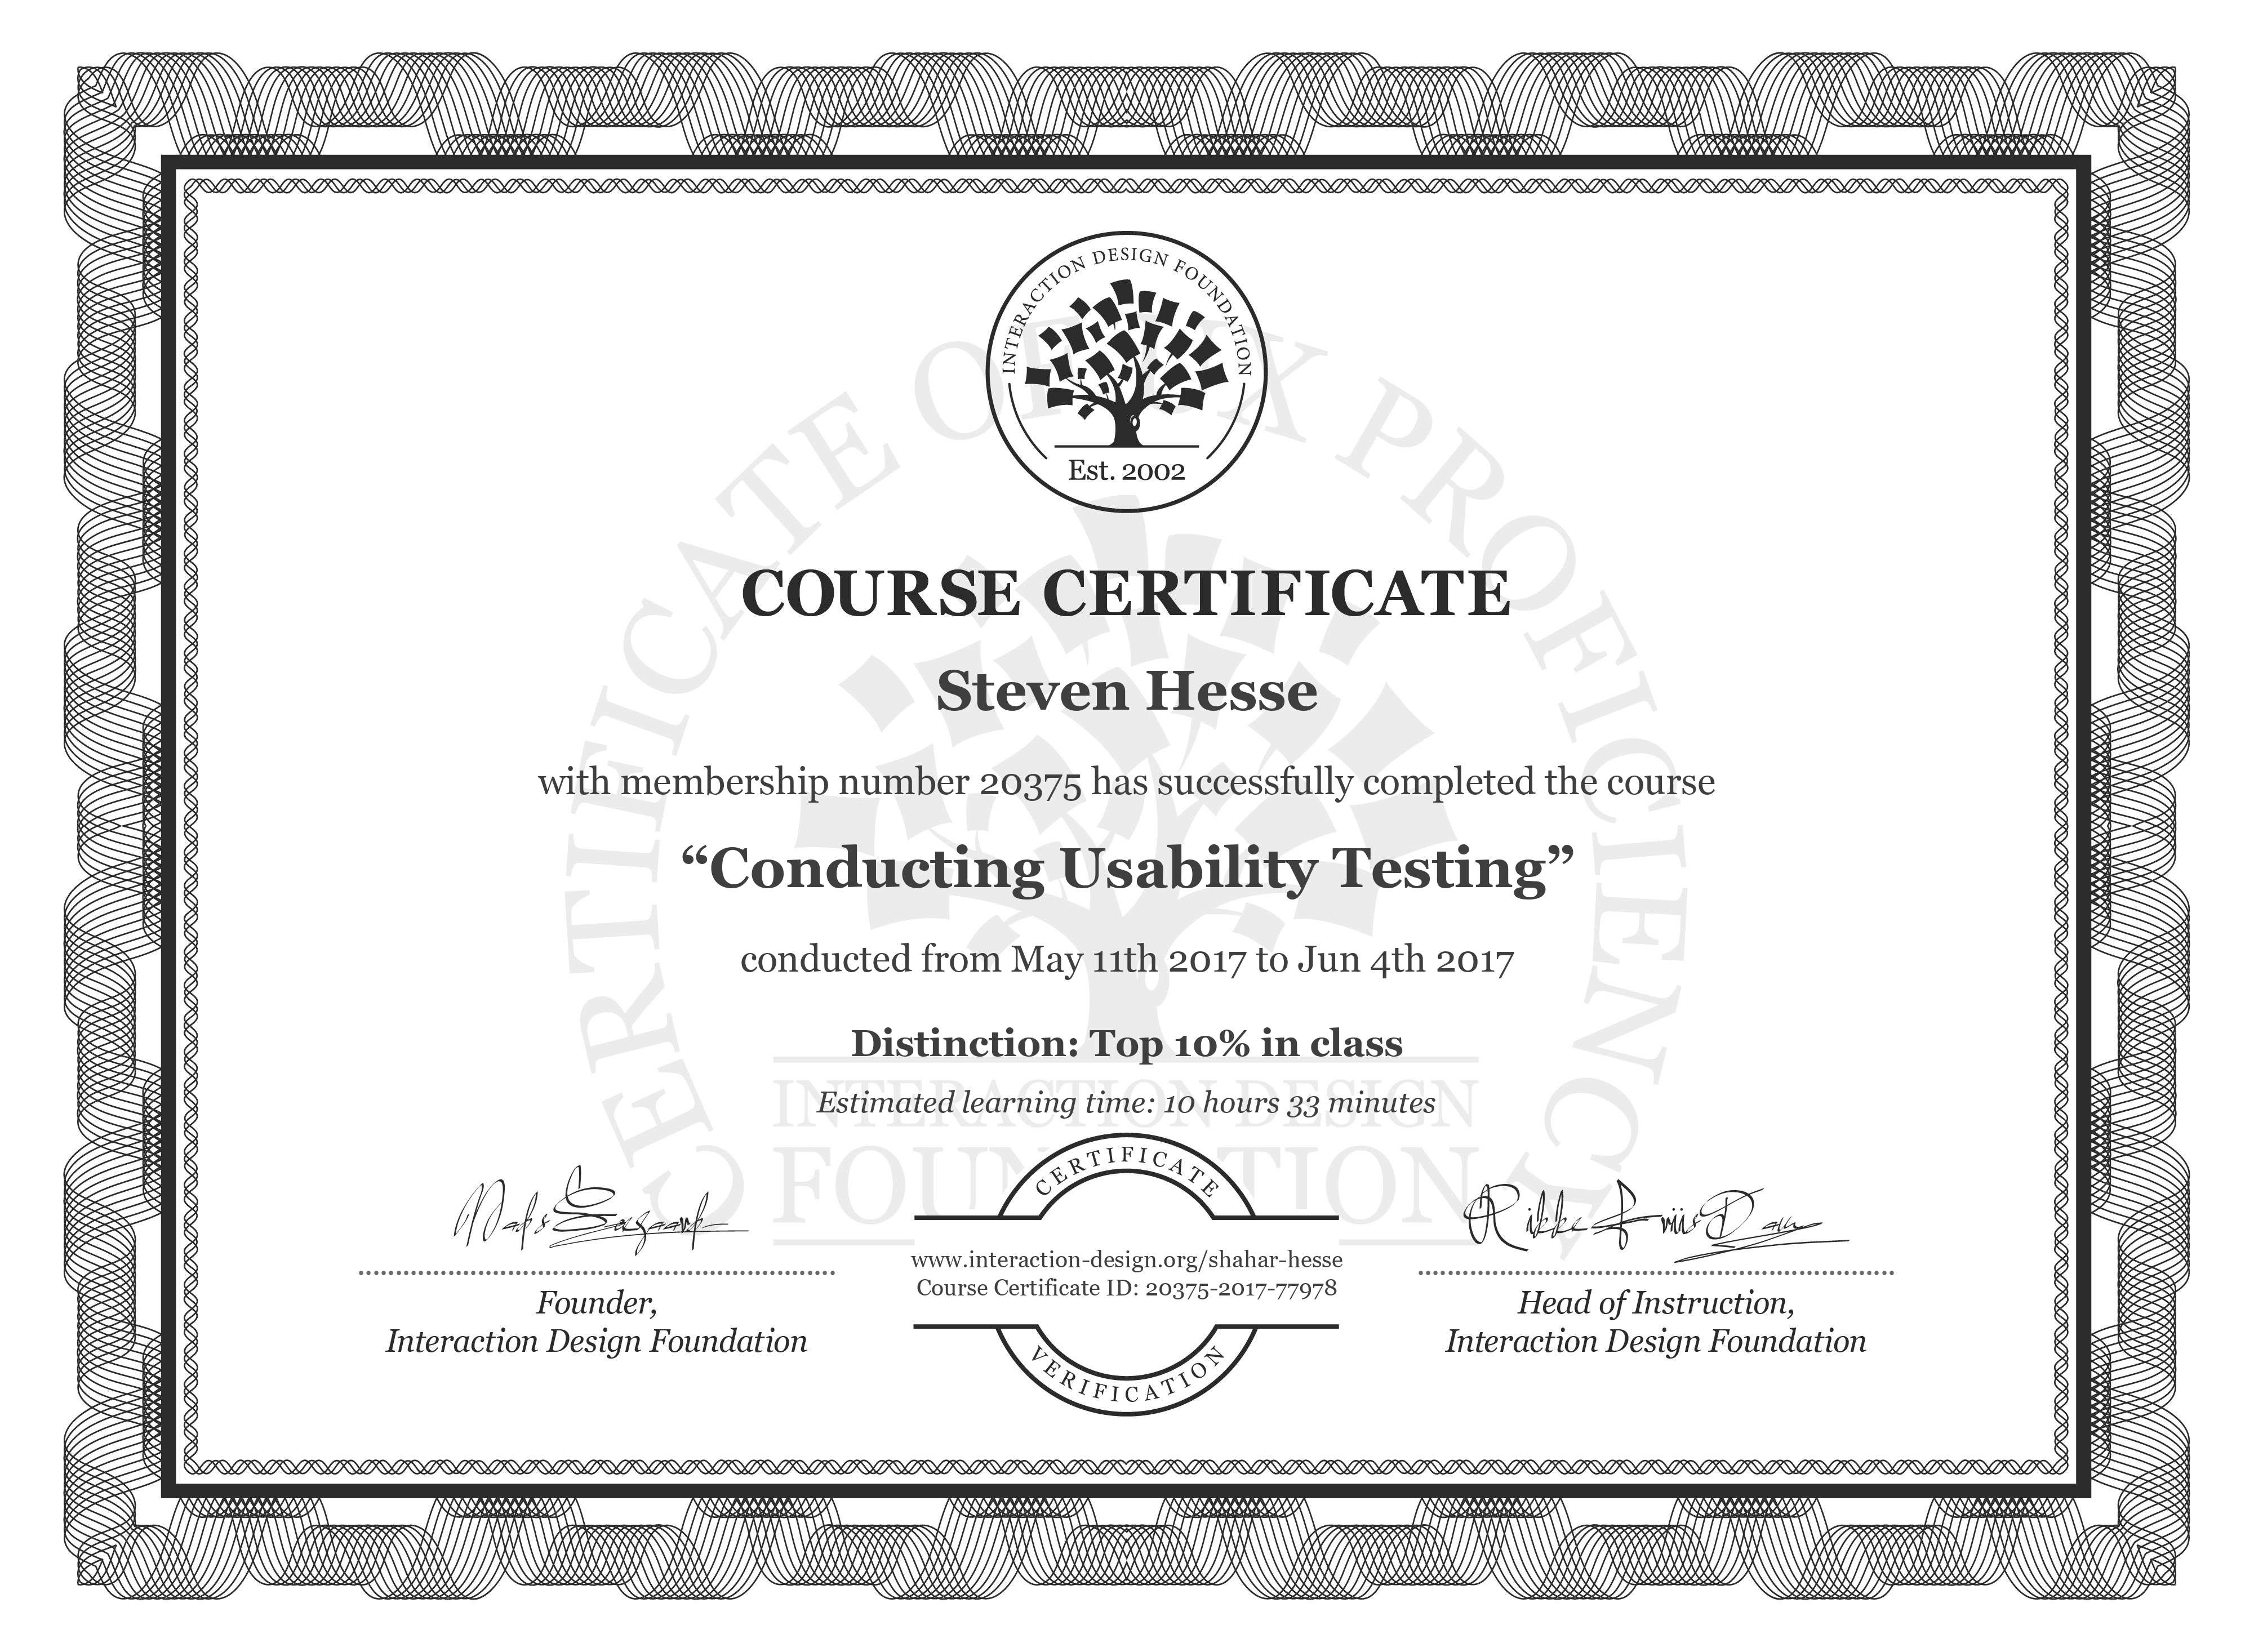 Steven Hesse's Course Certificate: Conducting Usability Testing